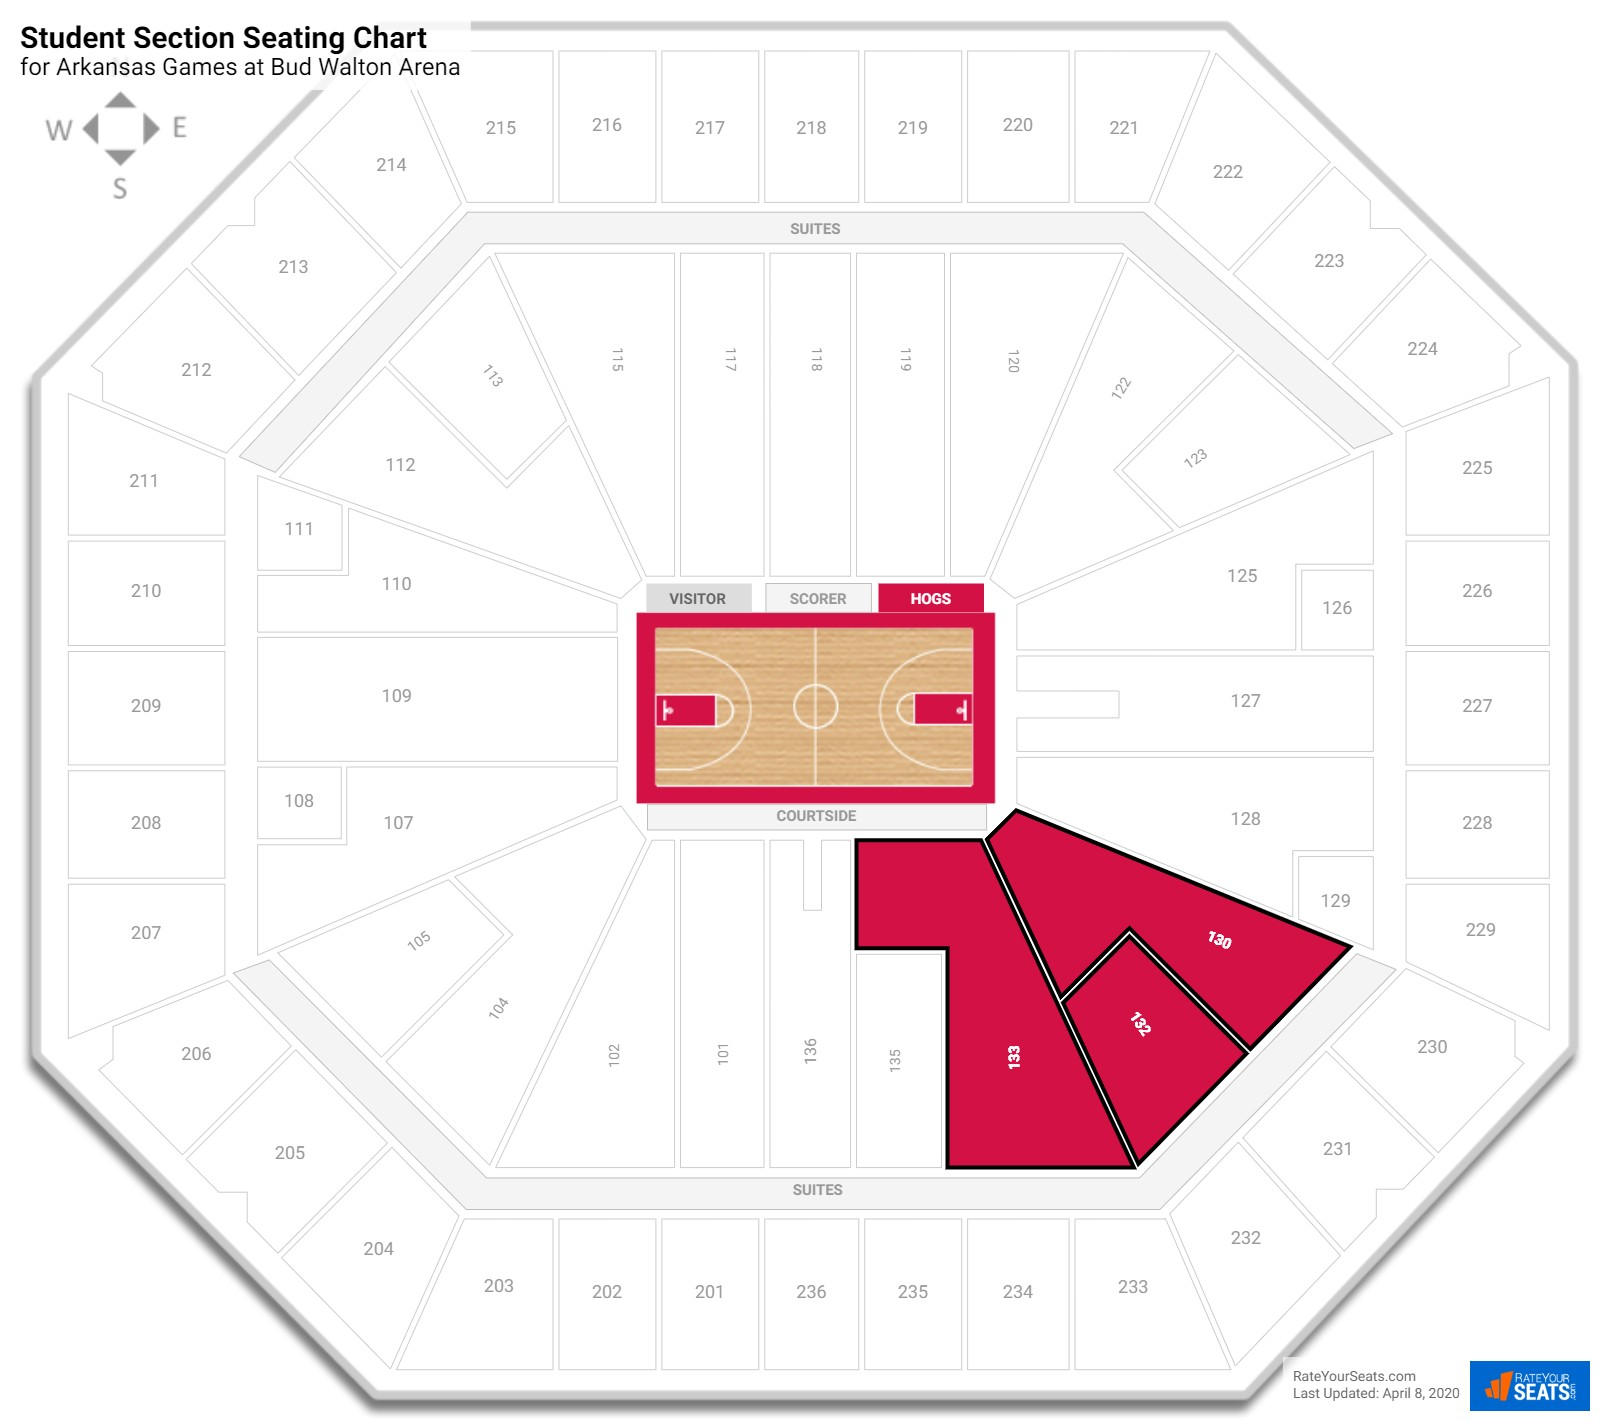 Bud Walton Arena Arkansas Seating Guide Rateyourseatscom